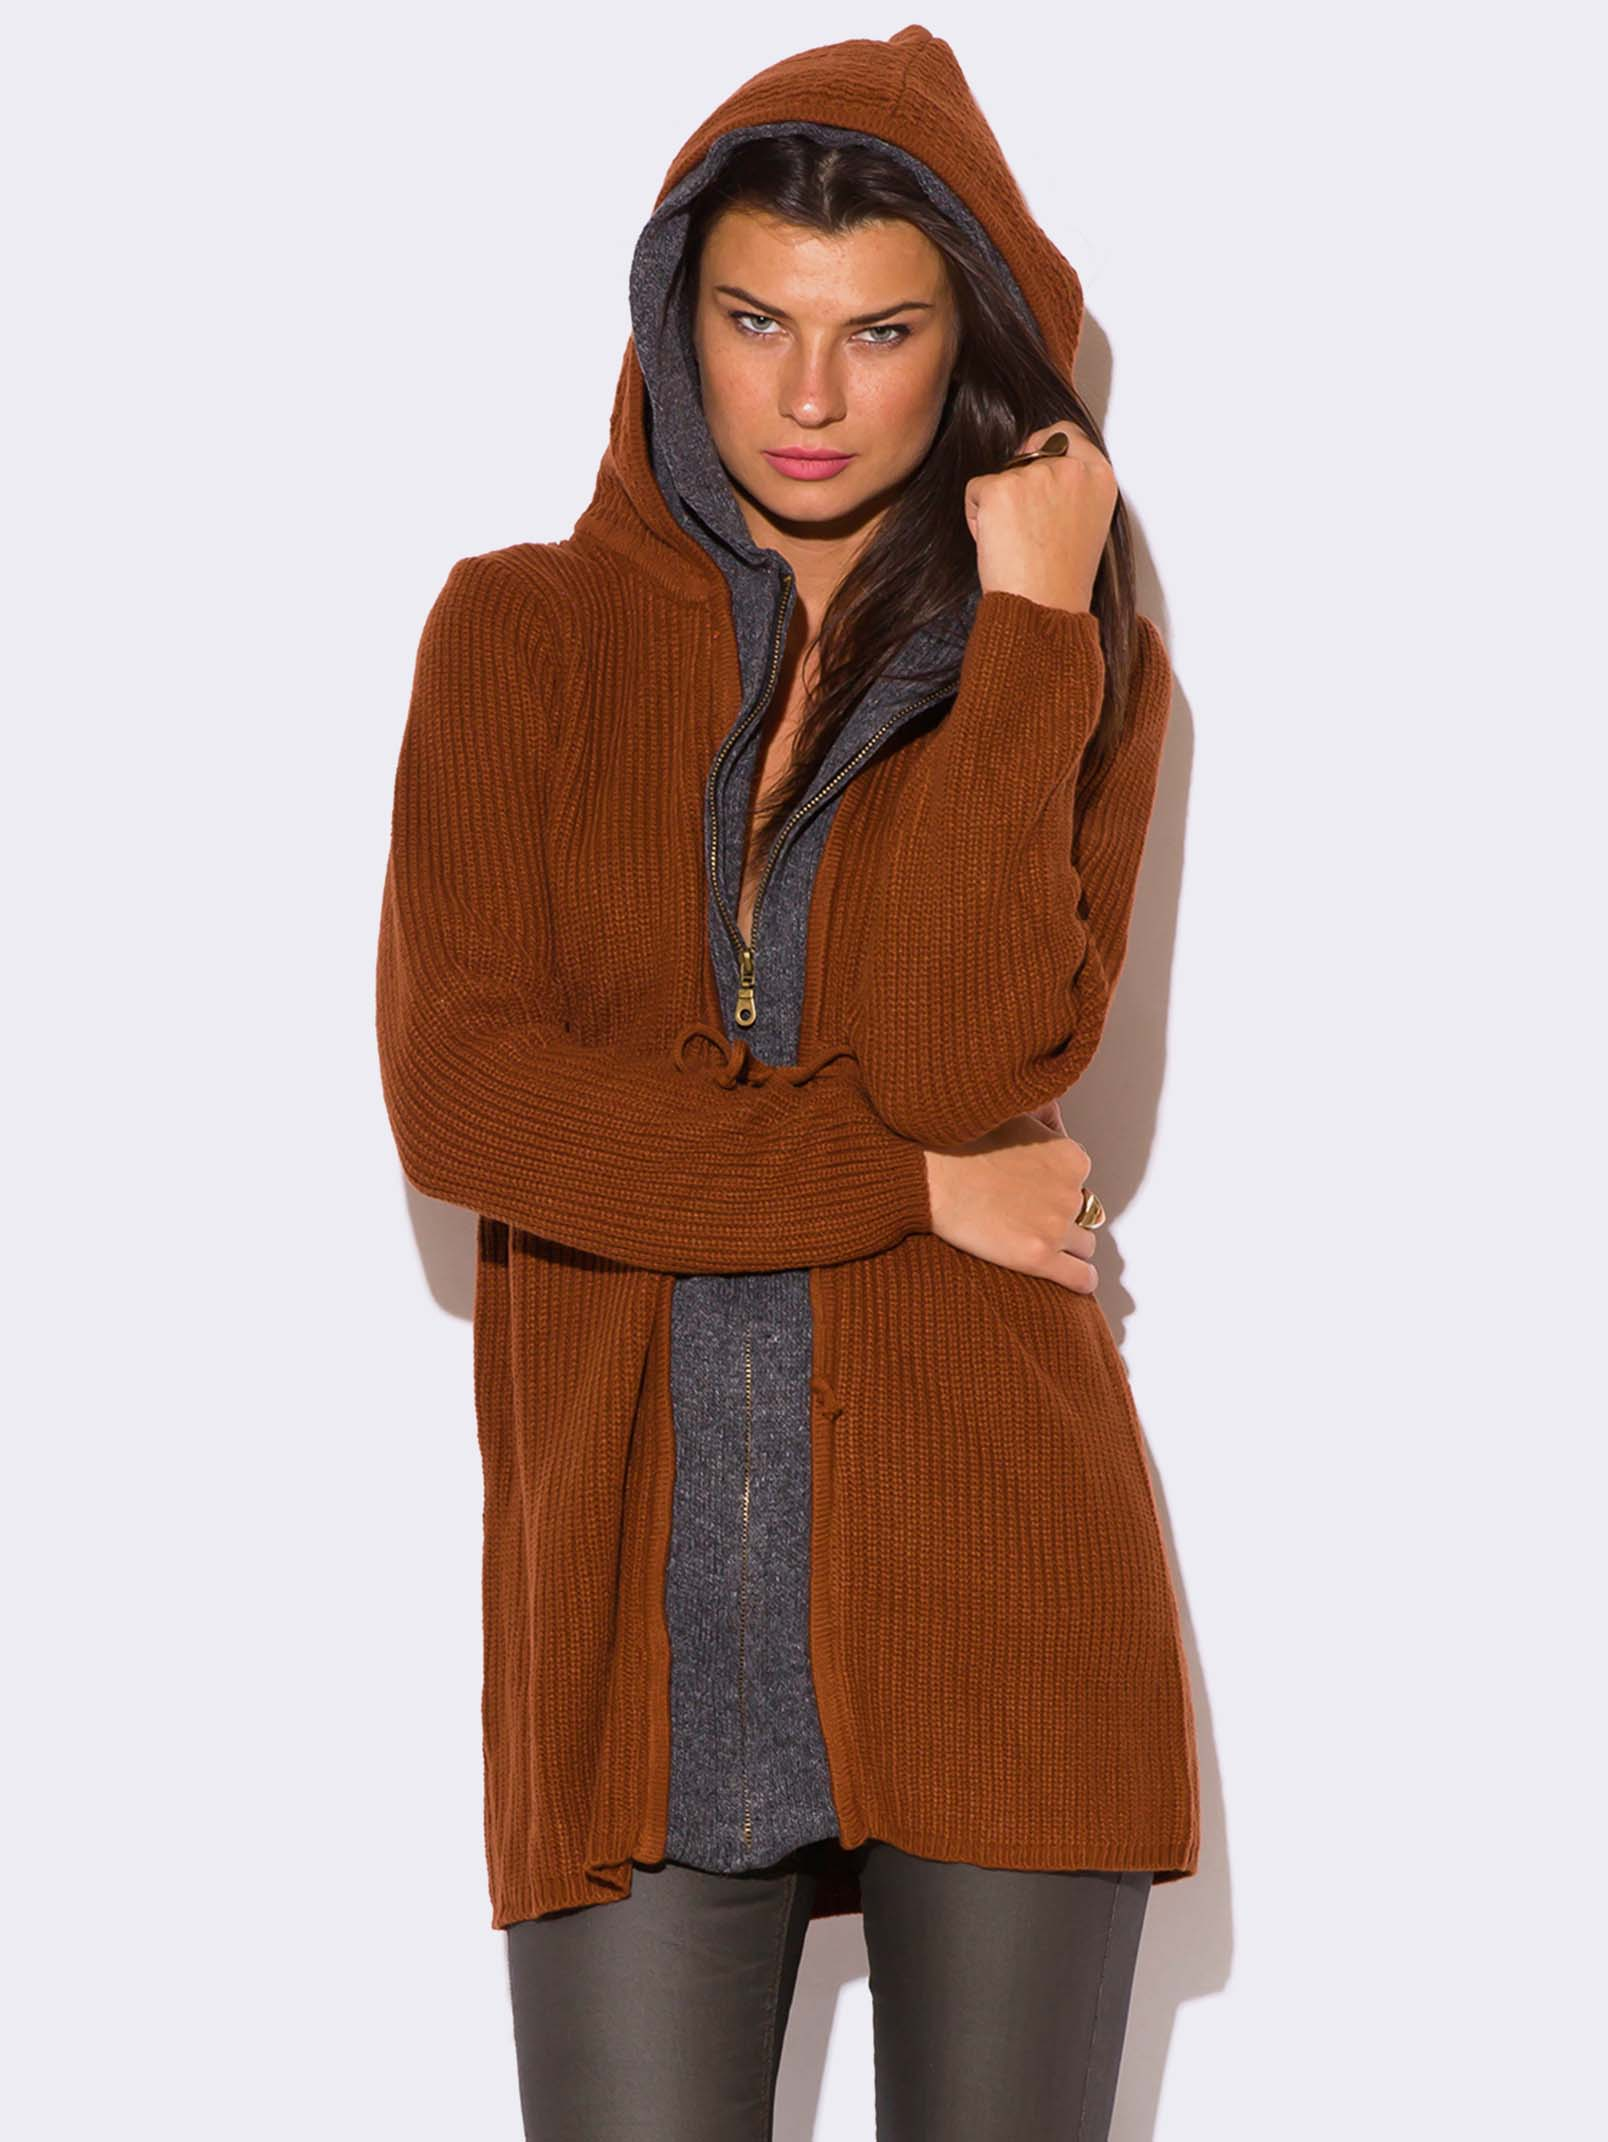 RUST BROWN ZIP UP HOODED SWEATER - ModishOnline.com